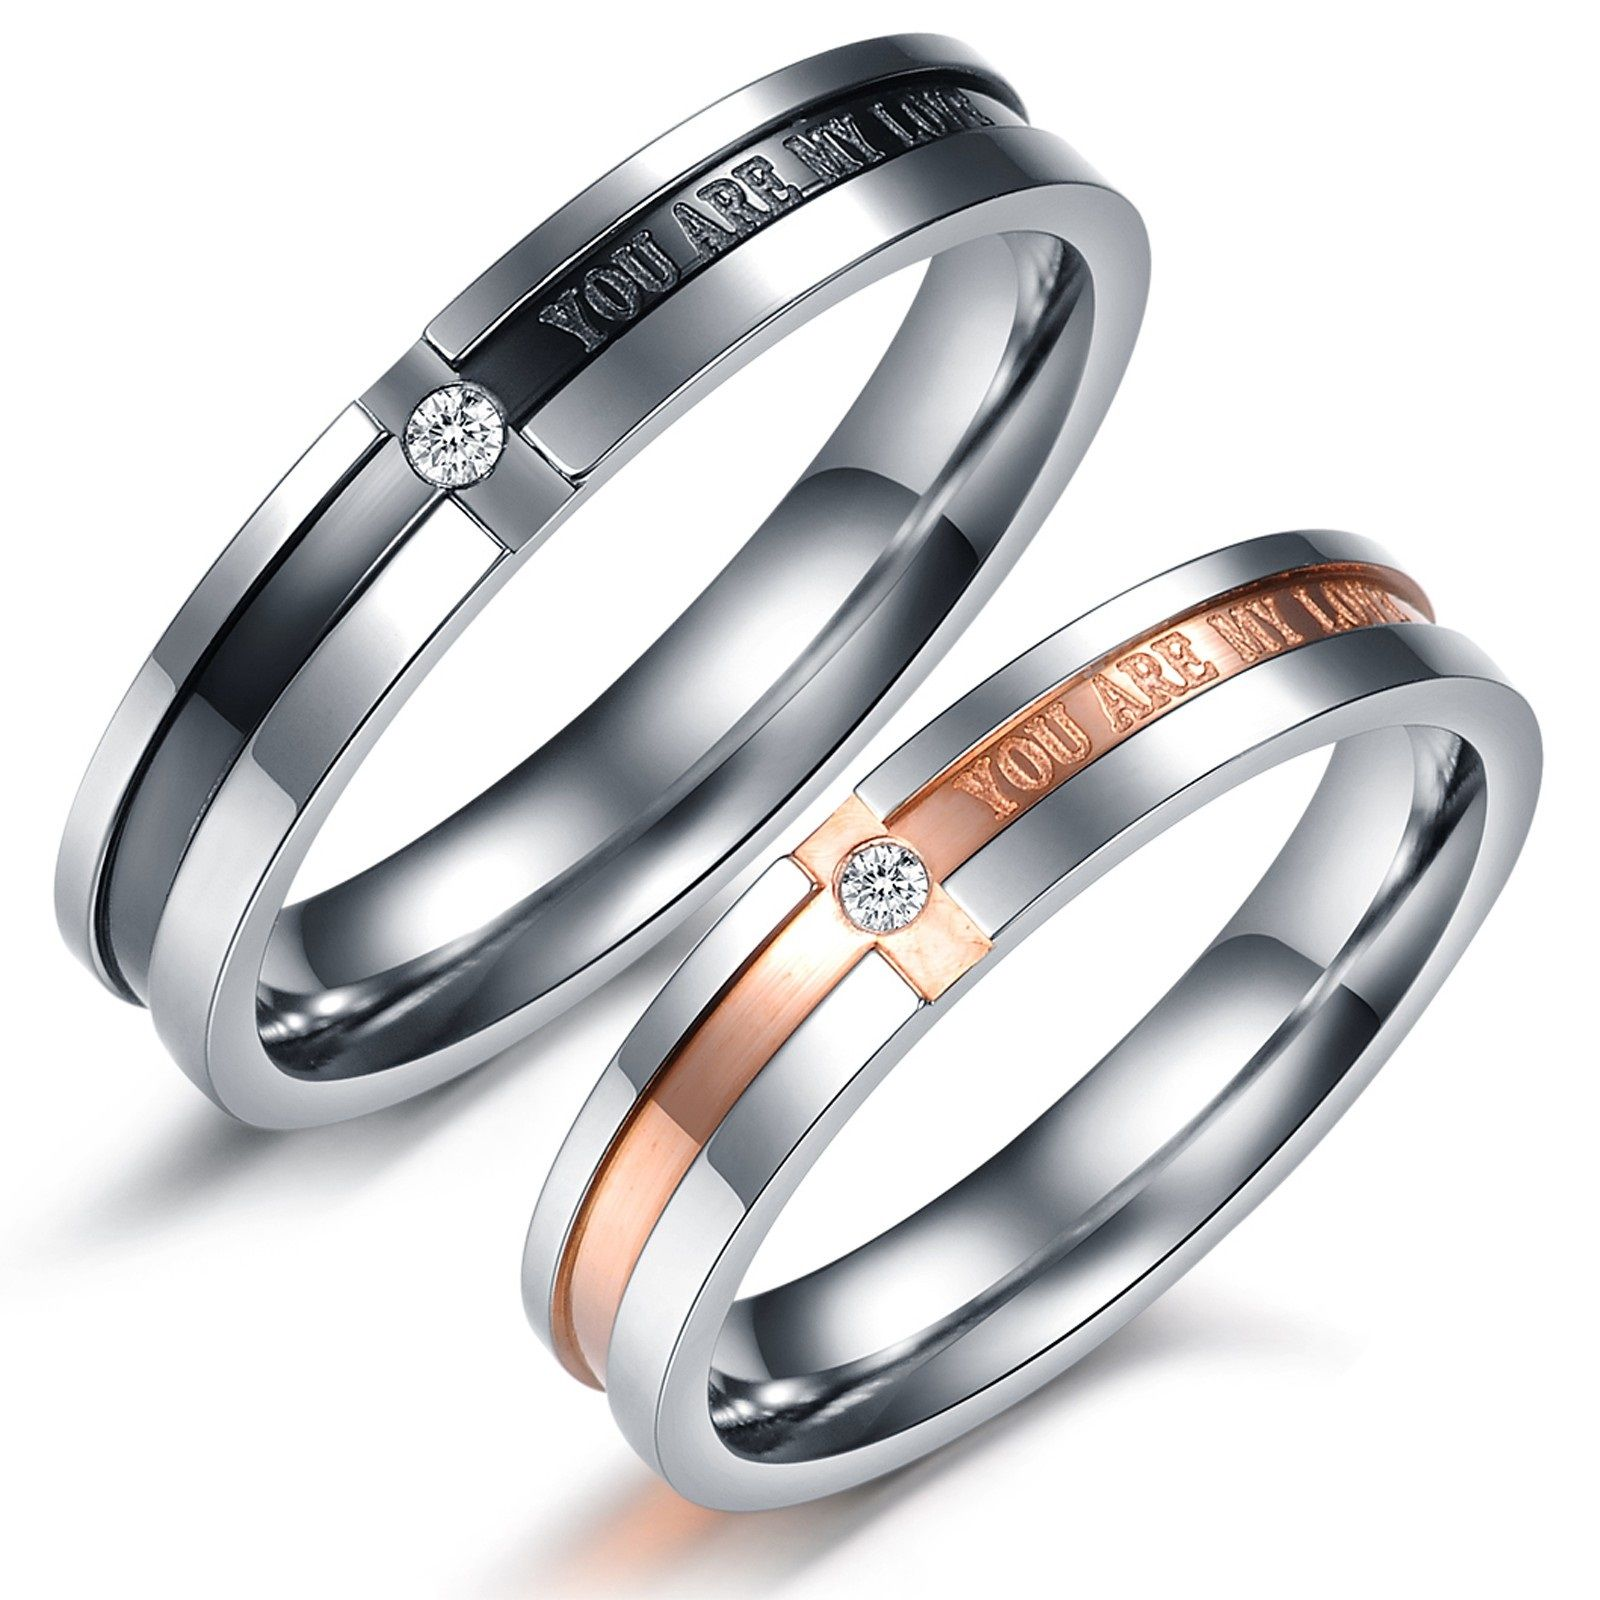 south couple wholesale rings fashion engagement queen titanium japan korea her accessories ring his item king and